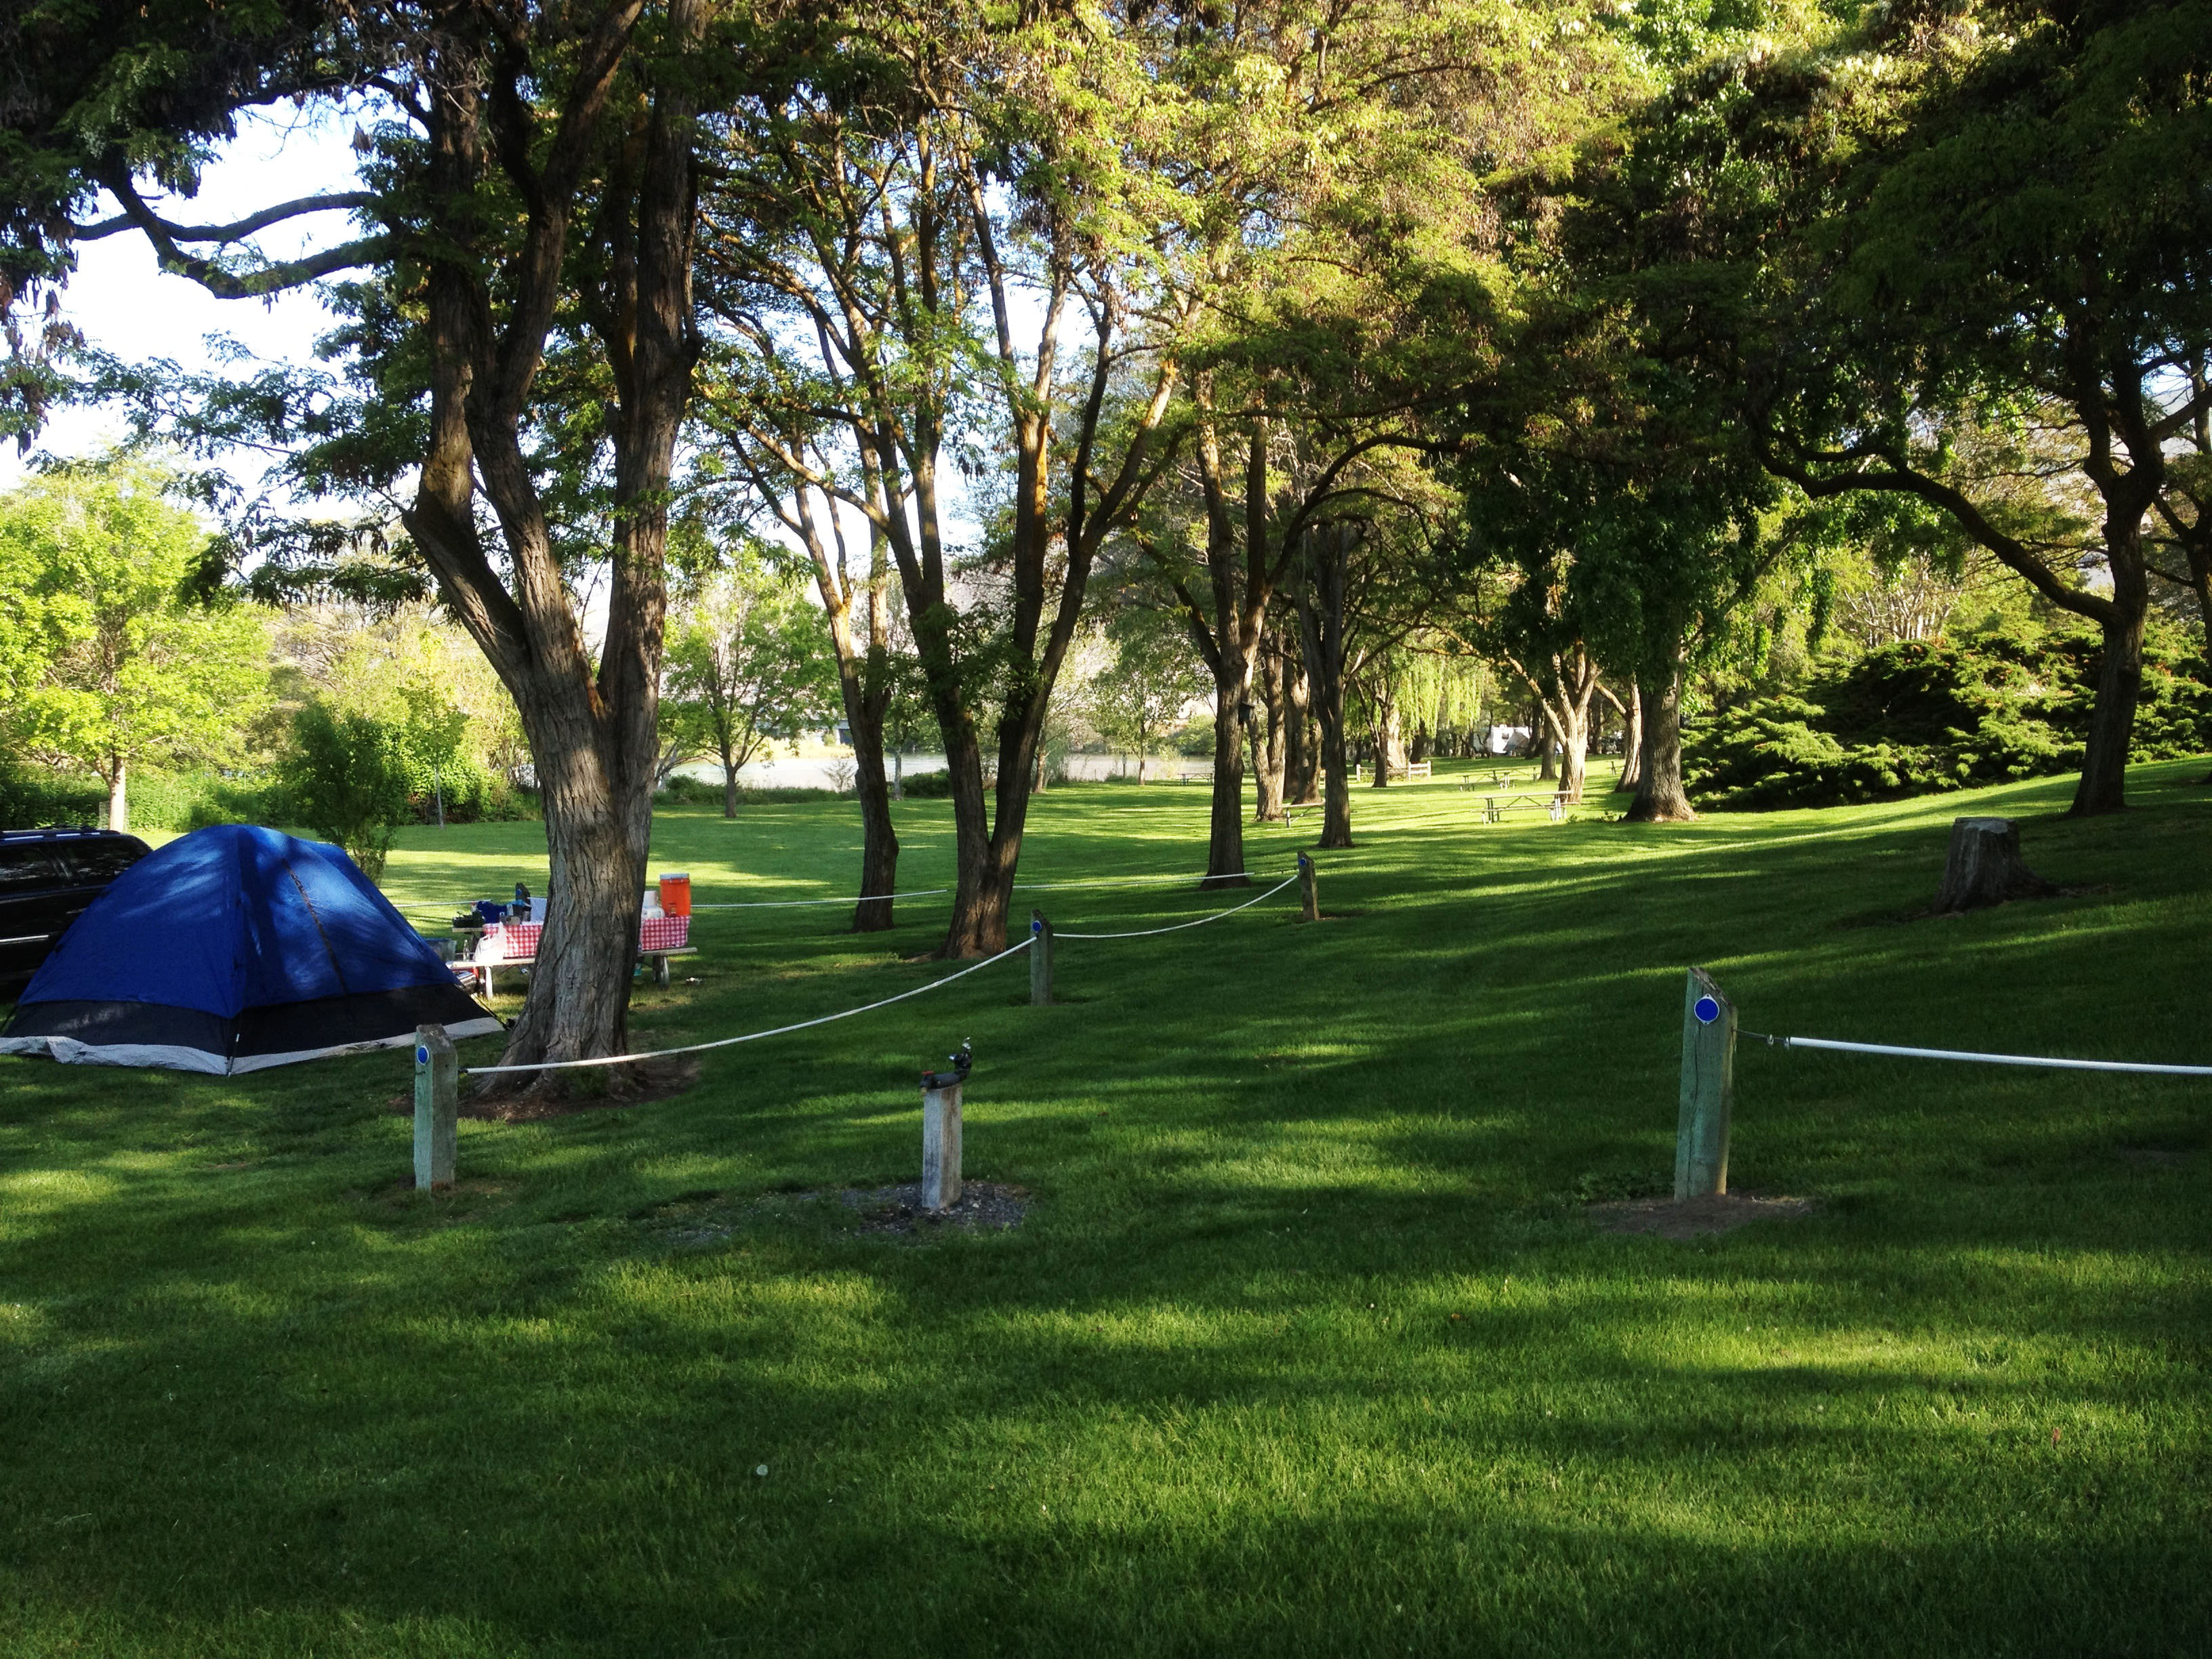 Deschutes river state park the gorge the dalles oregon for Camping grounds with cabins